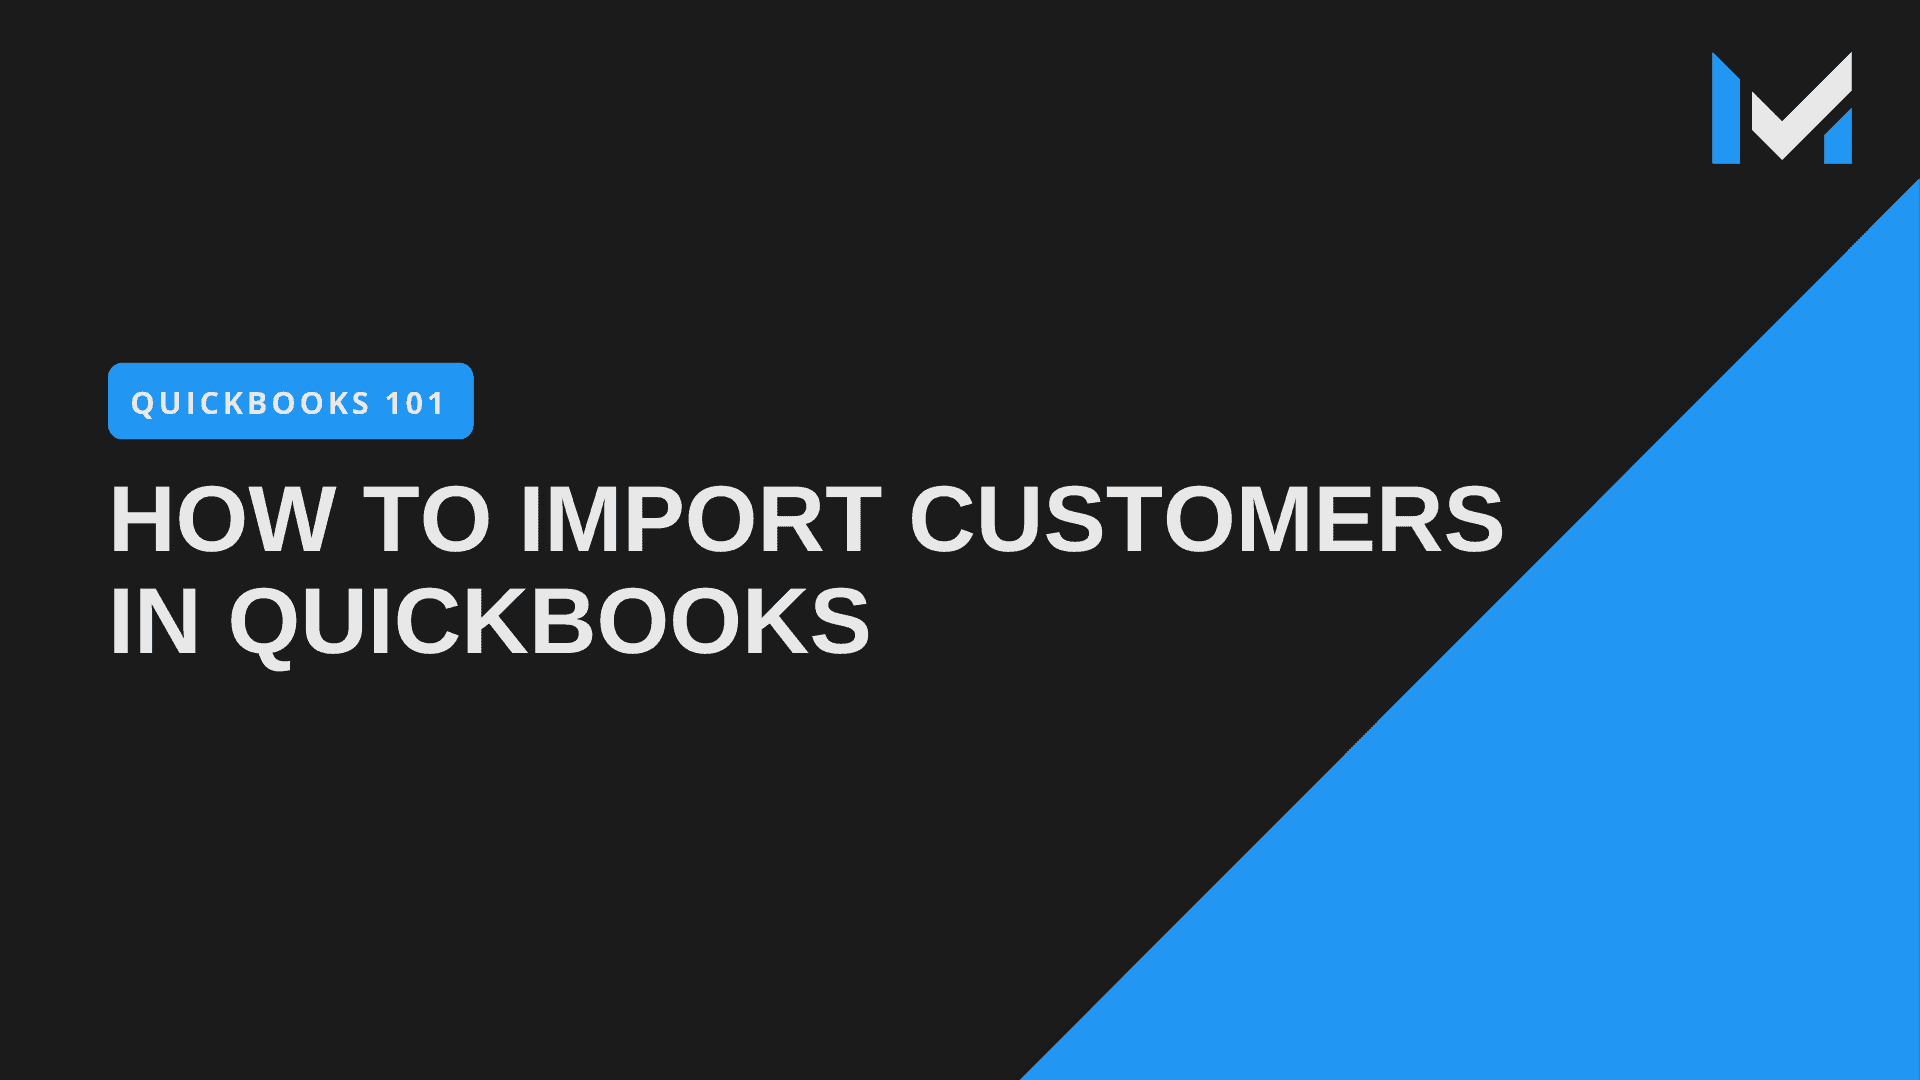 How to Import Customers Into QuickBooks Pro